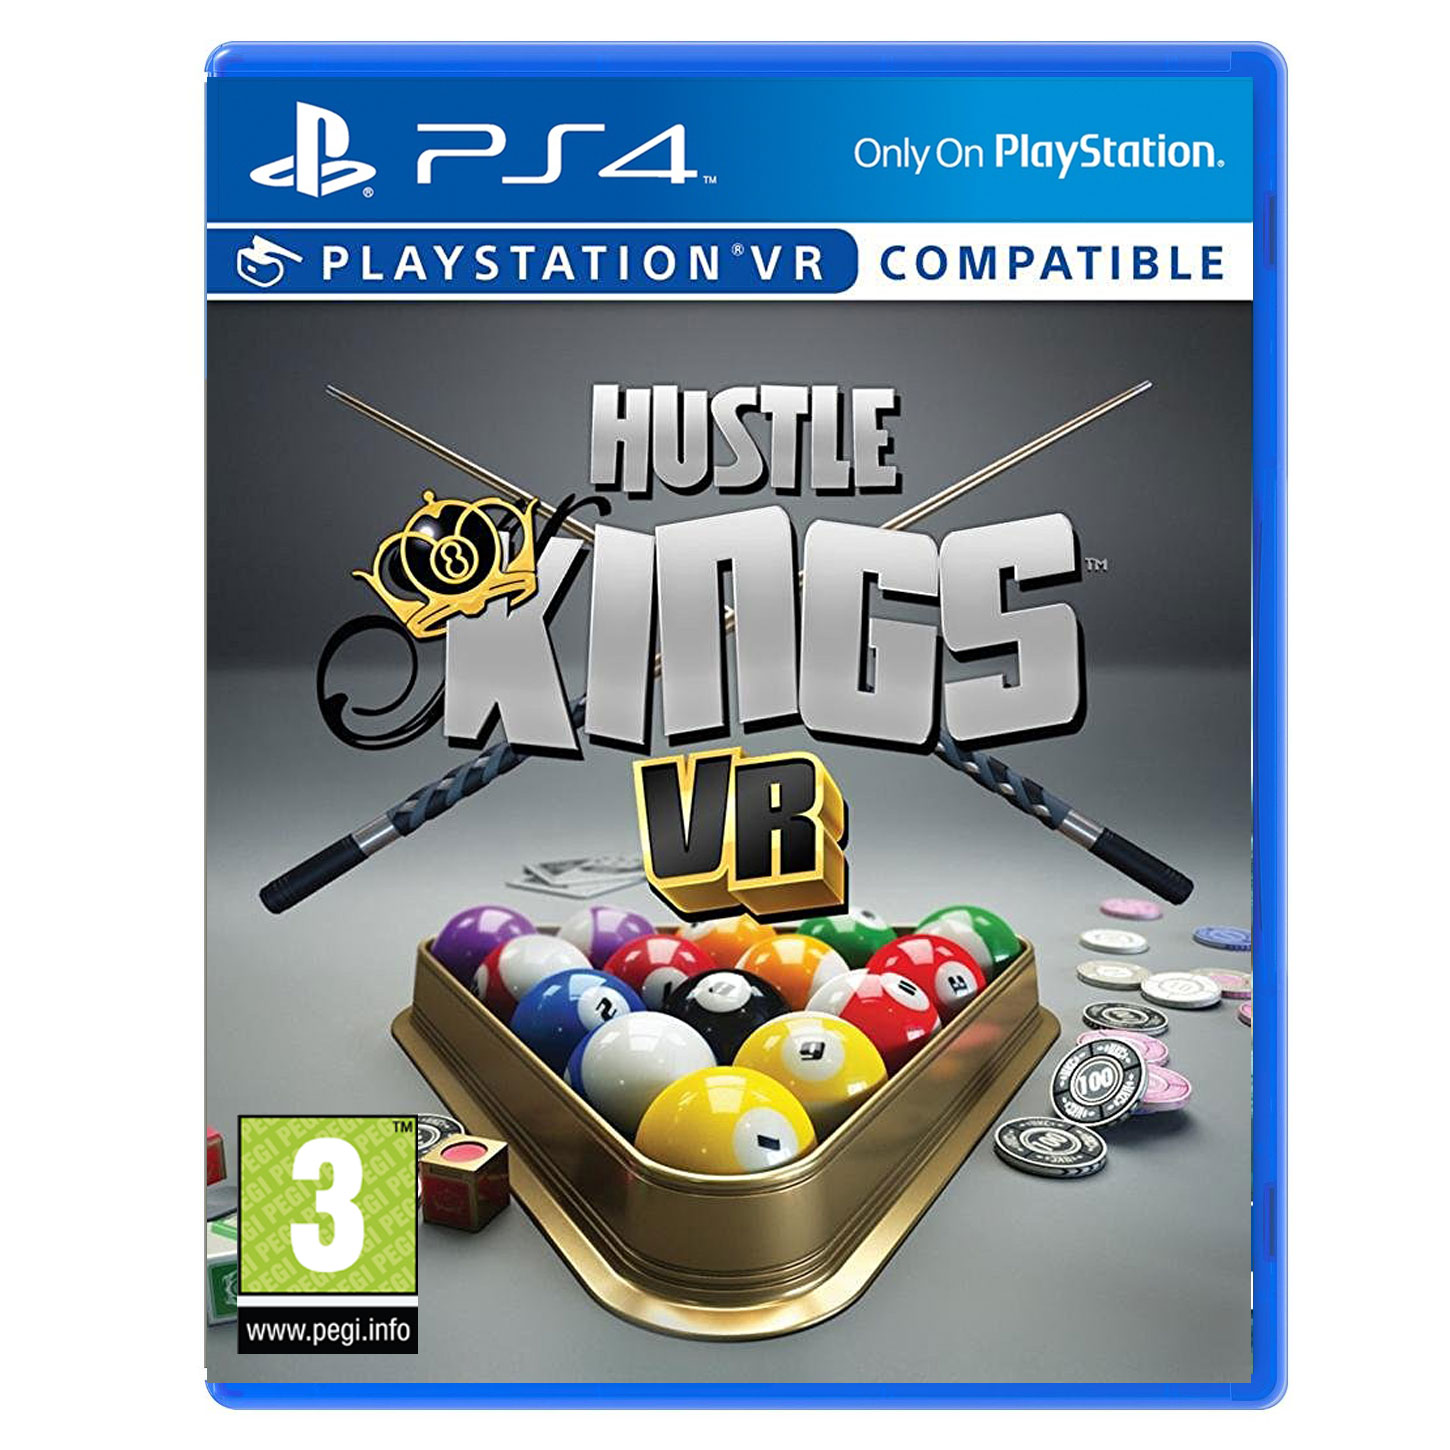 hustle kings vr ps vr jeux ps4 sony interactive entertainment sur. Black Bedroom Furniture Sets. Home Design Ideas